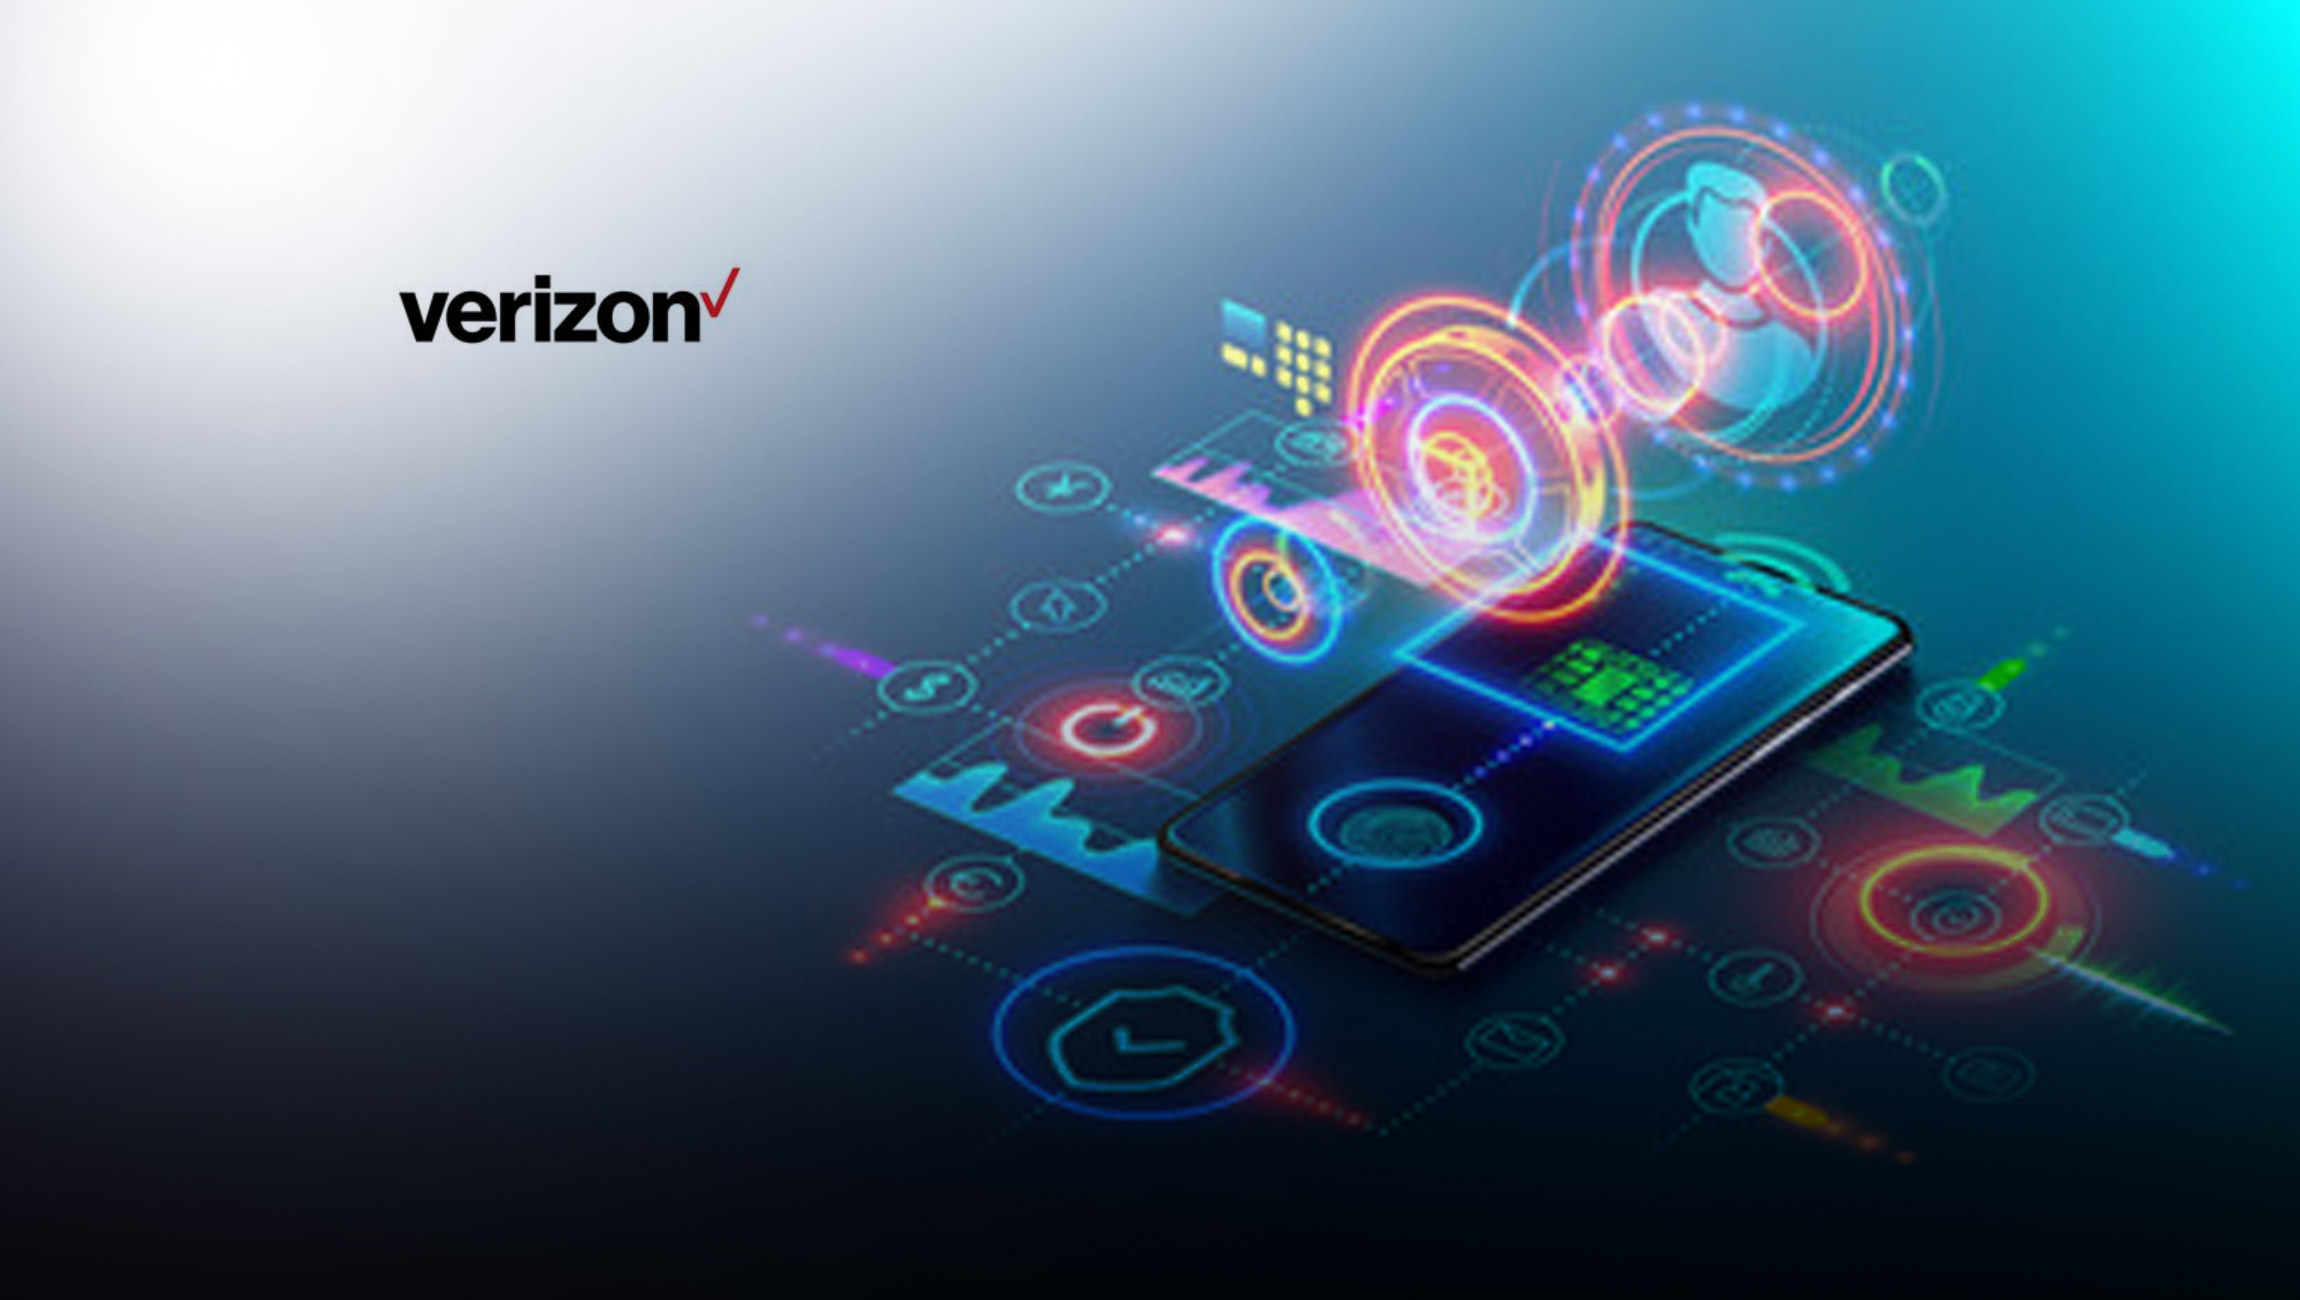 Verizon Business Offers Touchless Payment Capability With Clover From Fiserv